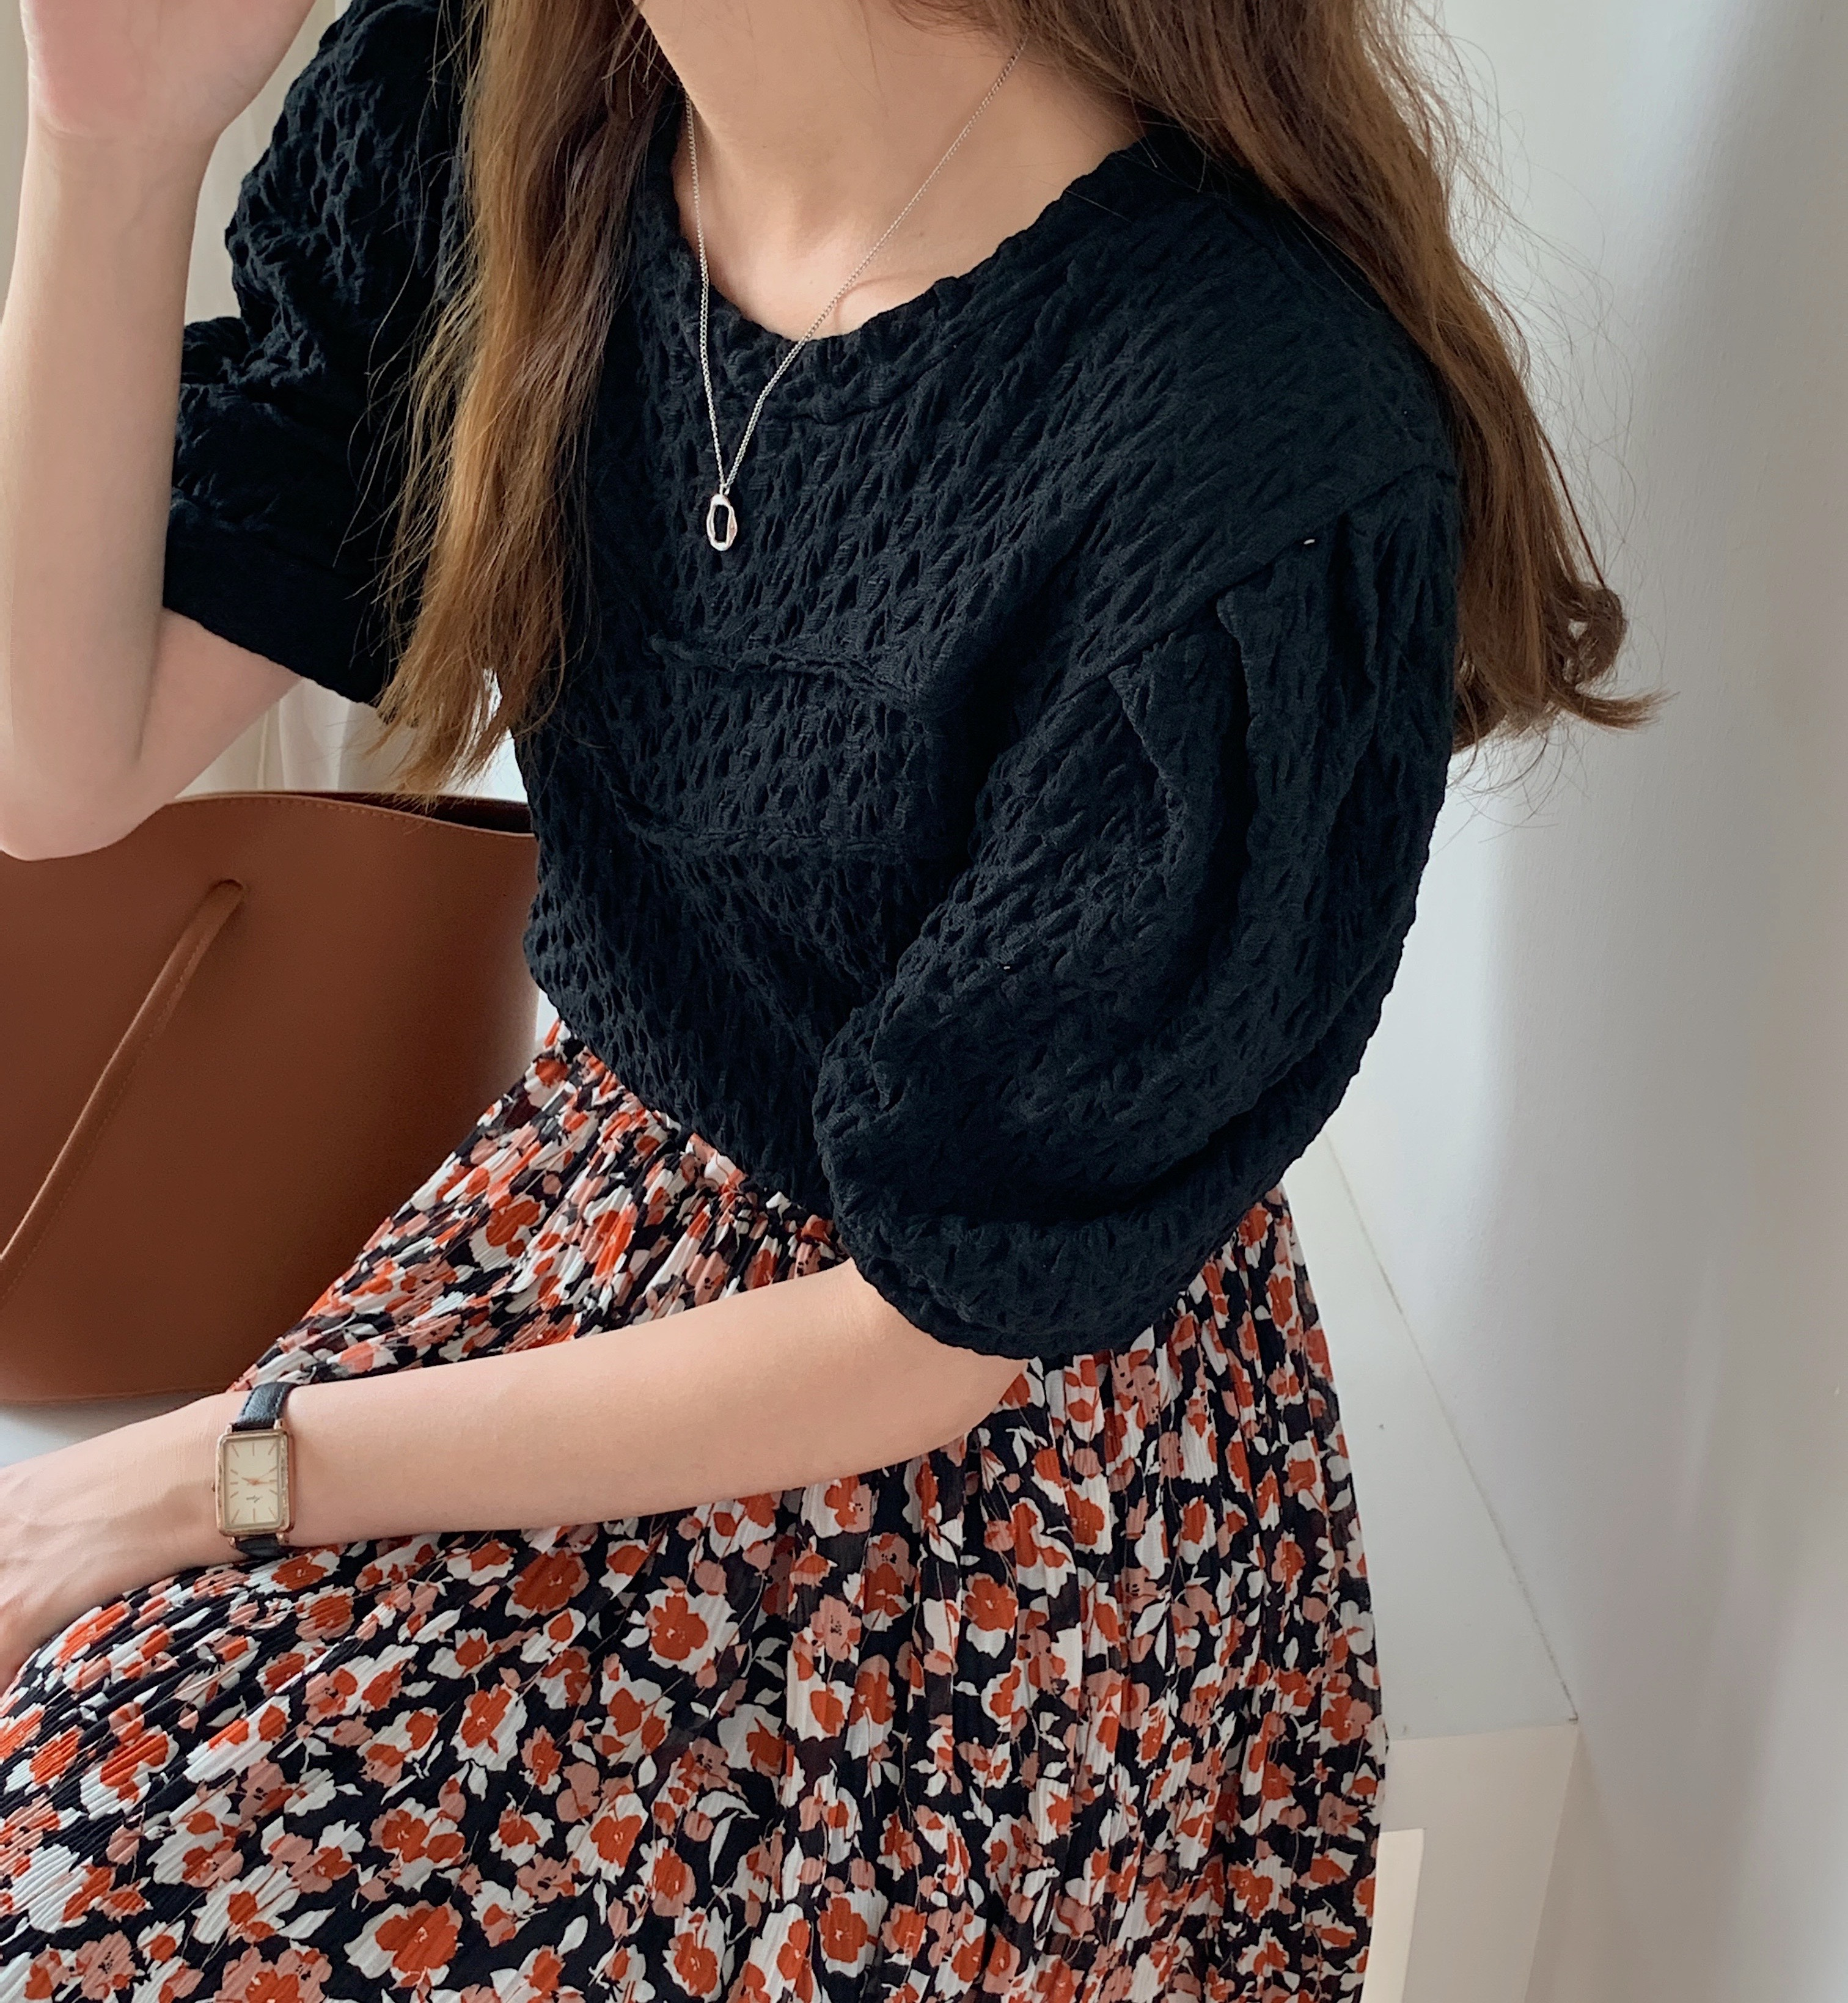 H291a3fb013f349da99991a90ee9f1859R - Summer O-Neck Short Sleeves Pleated Blouse